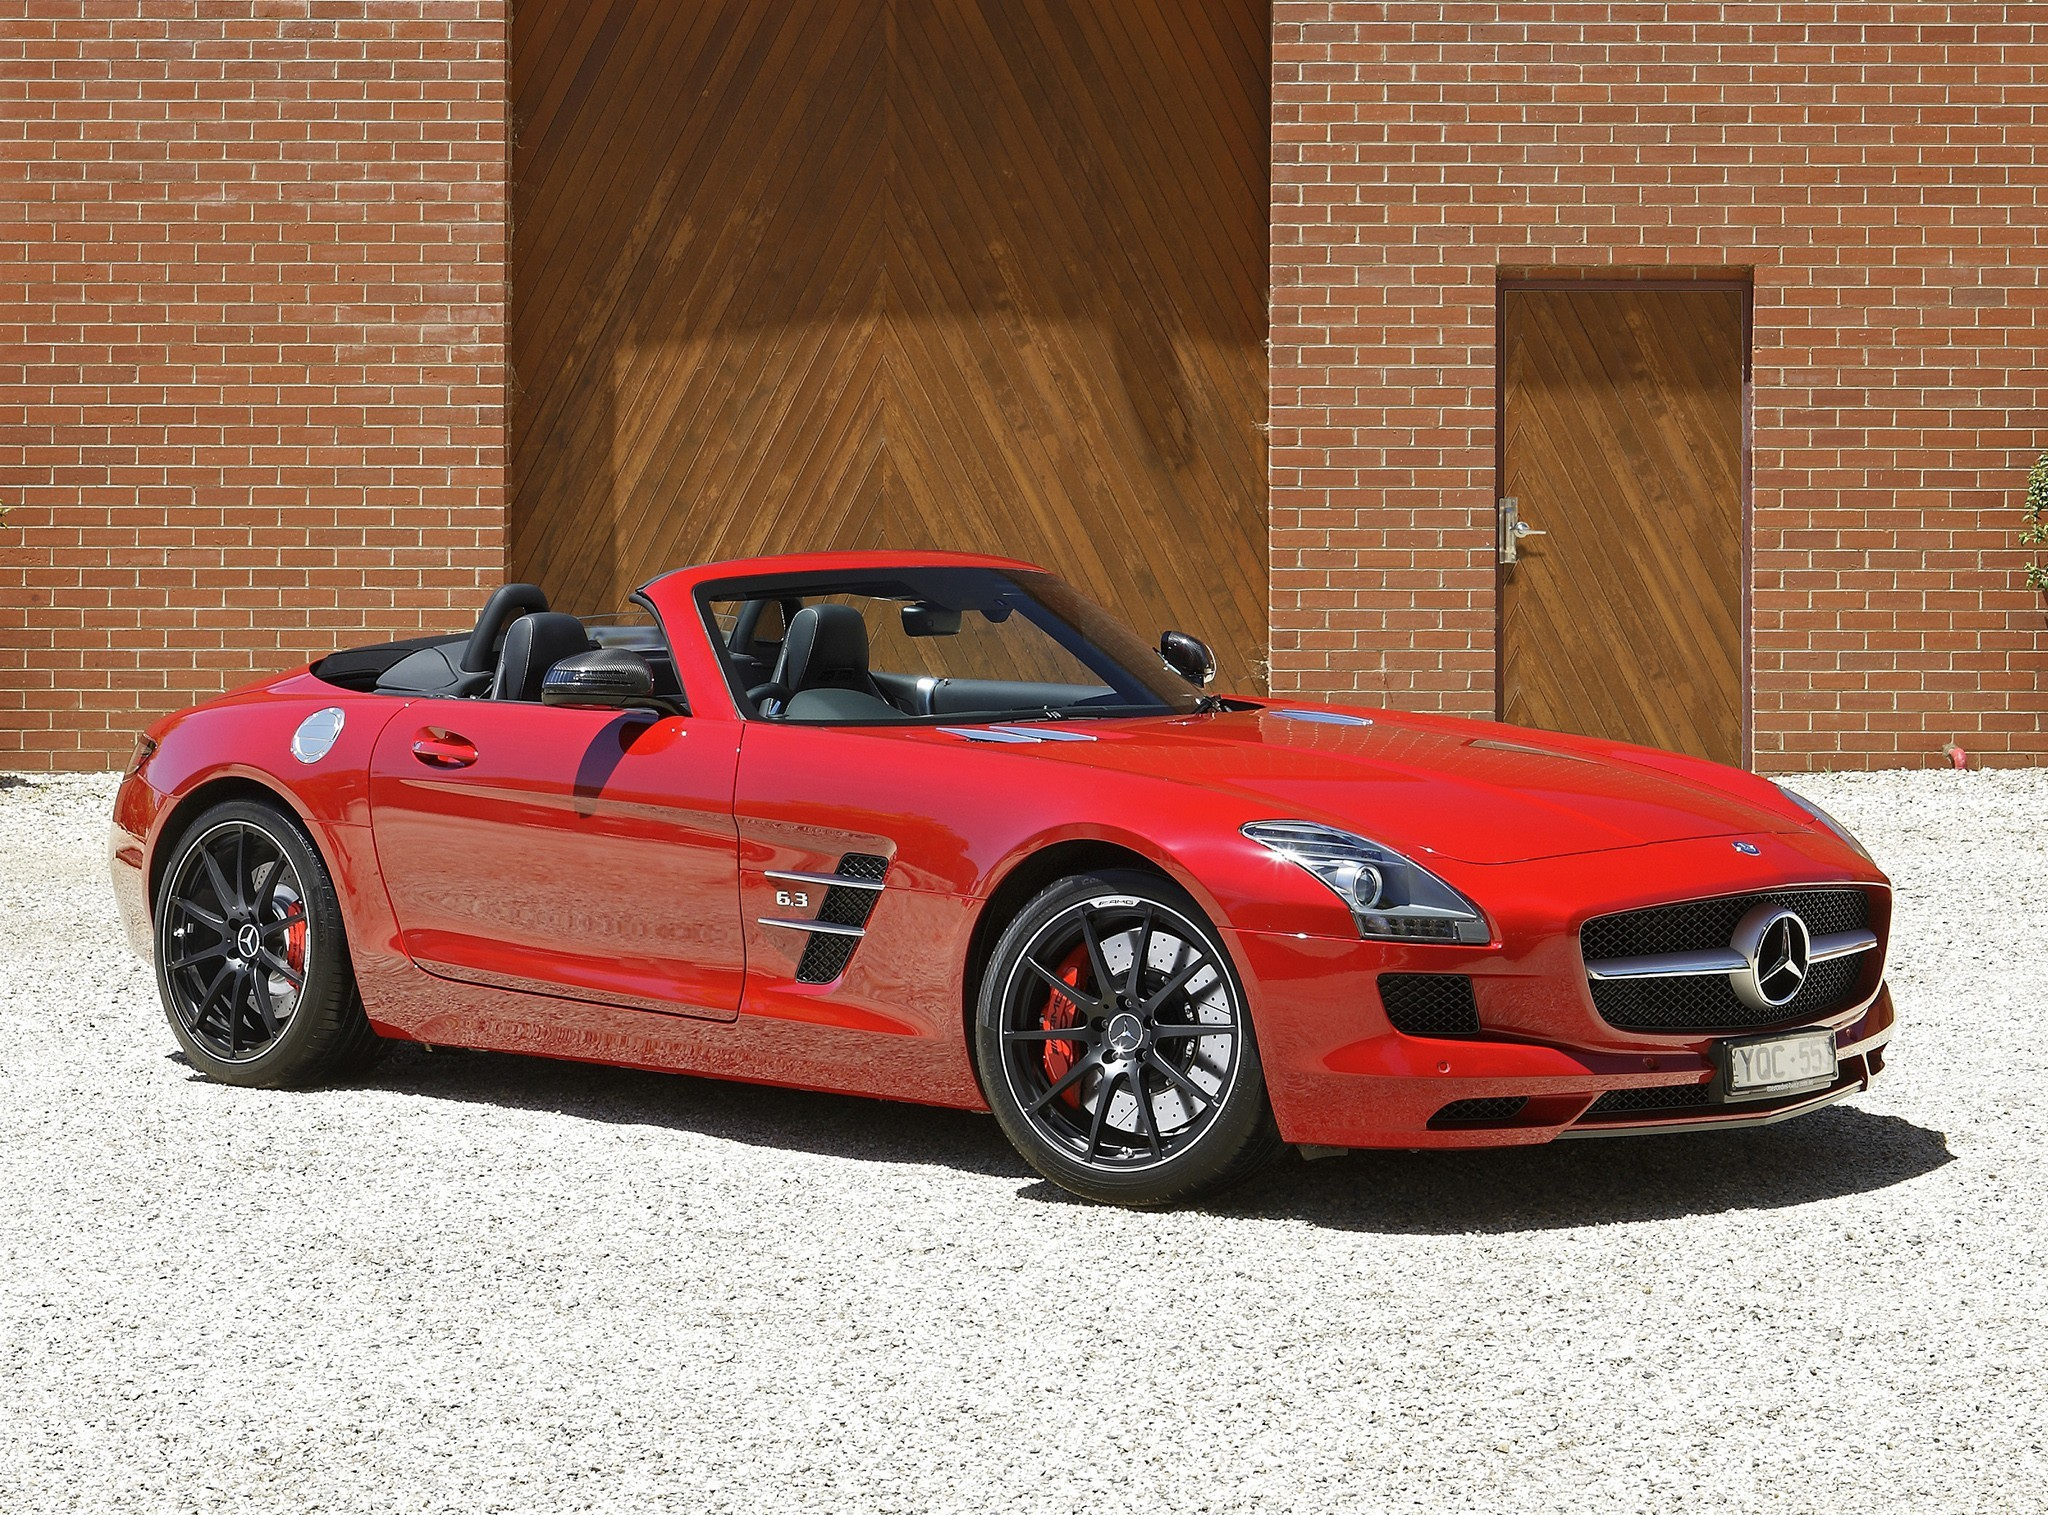 Build A Car From Scratch >> Mercedes-Benz SLS AMG Wallpapers, Pictures, Images